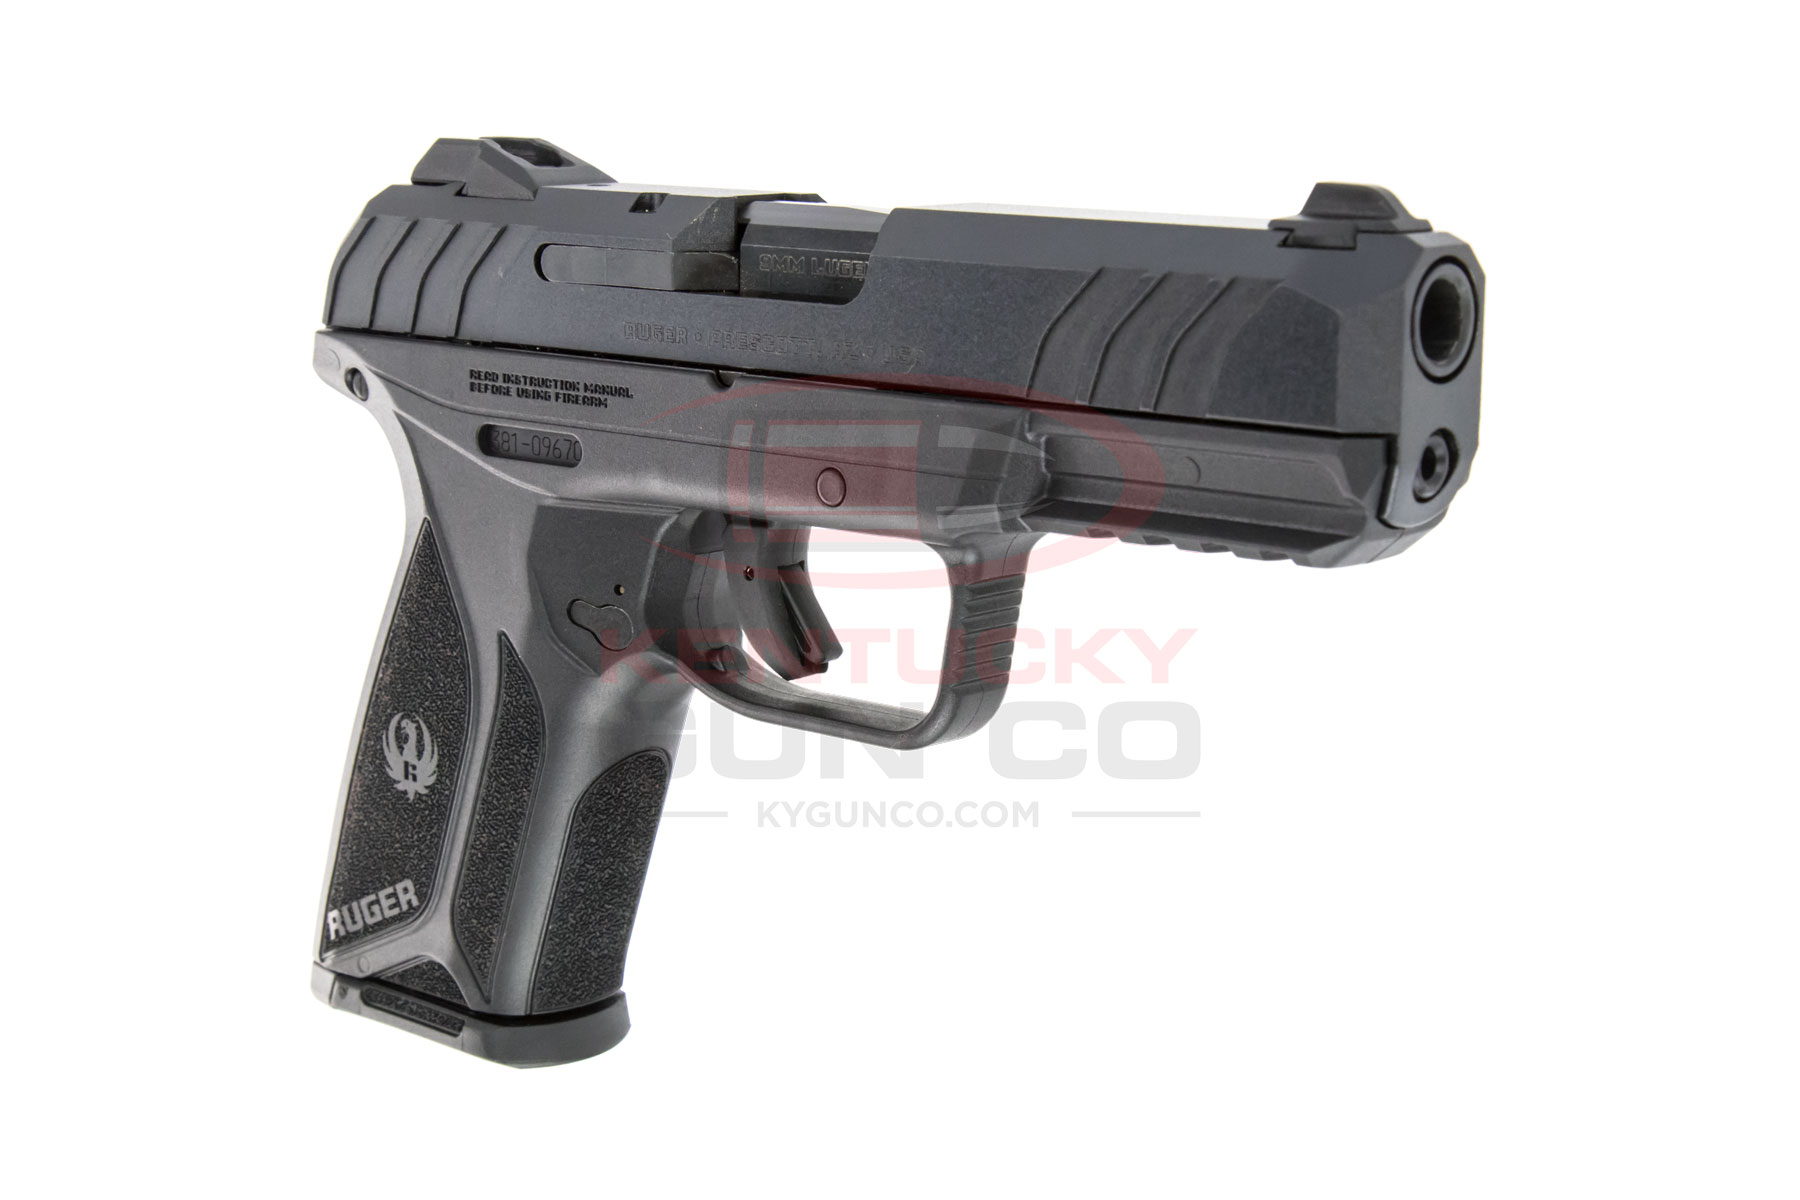 SECURITY-9 9MM 4